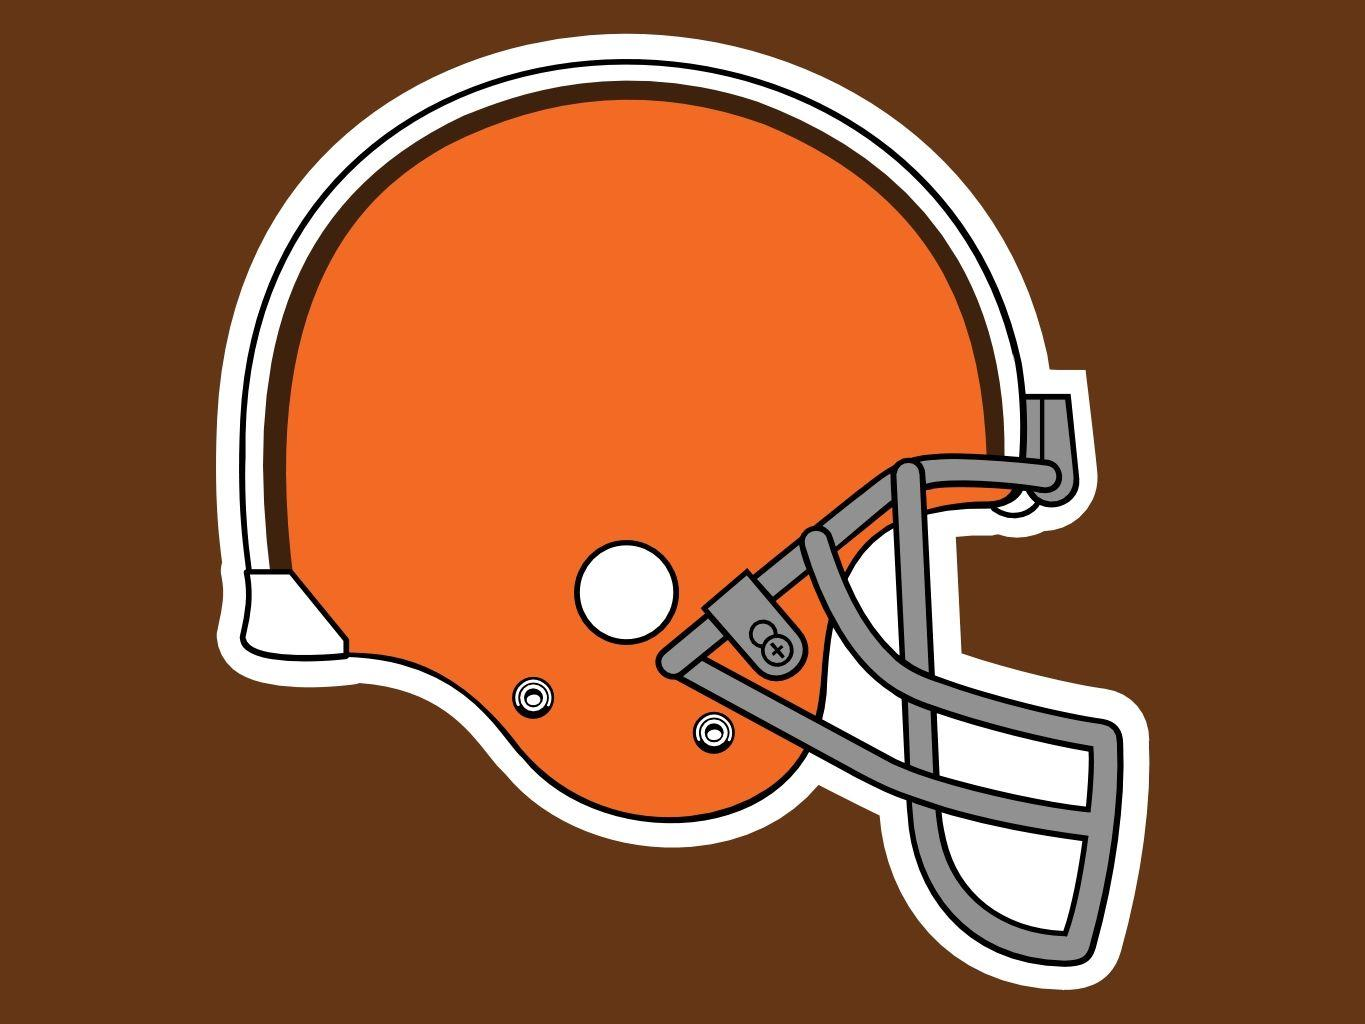 Cleveland Browns 2017 Wallpapers - Wallpaper Cave